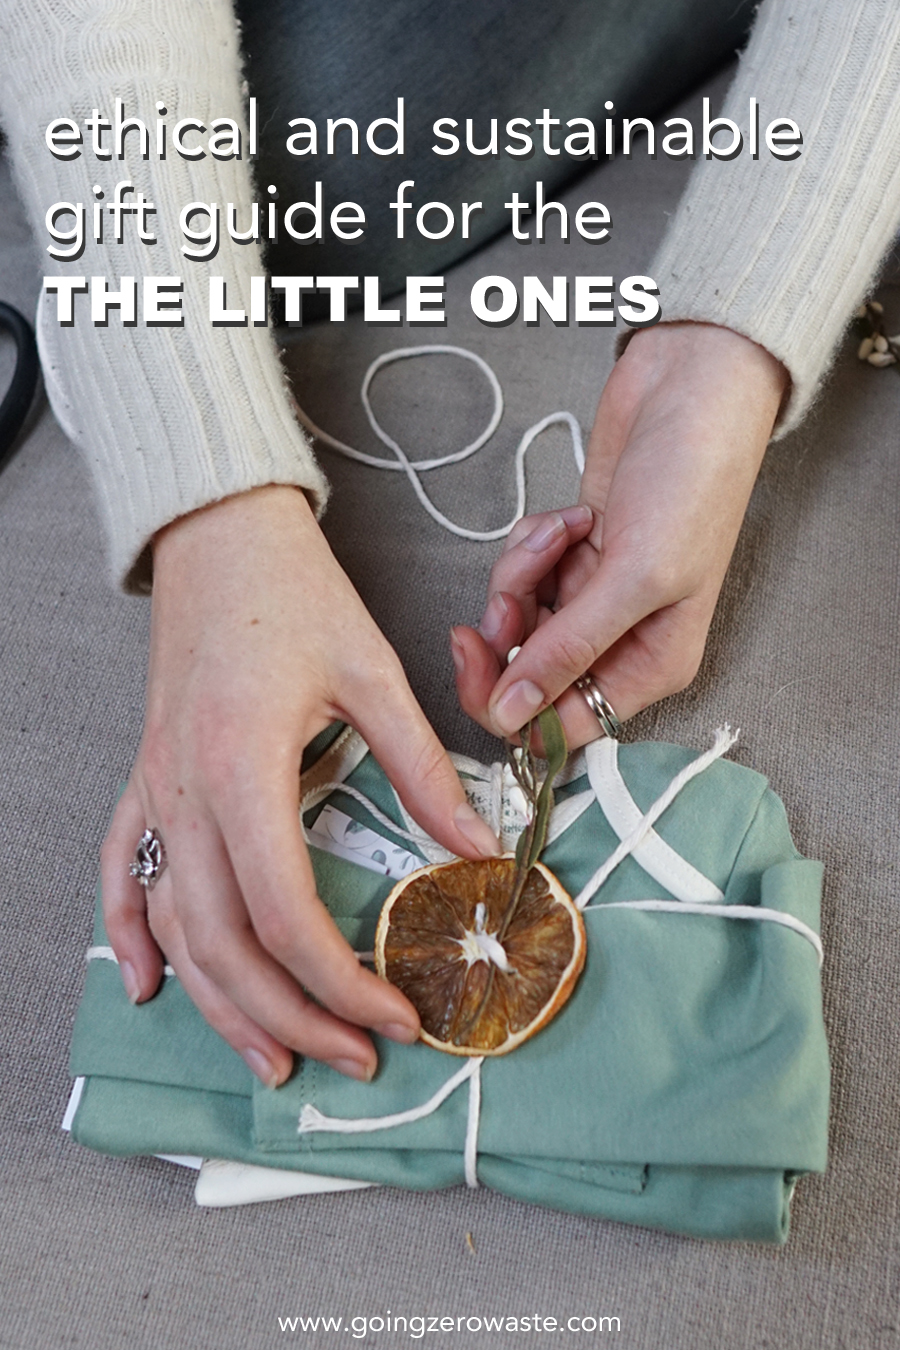 Ethical and sustainable gift guide for the little ones from www.goingzerowaste.com #ethical #sustainable #giftguide #toddlers #newmoms #babies #kids